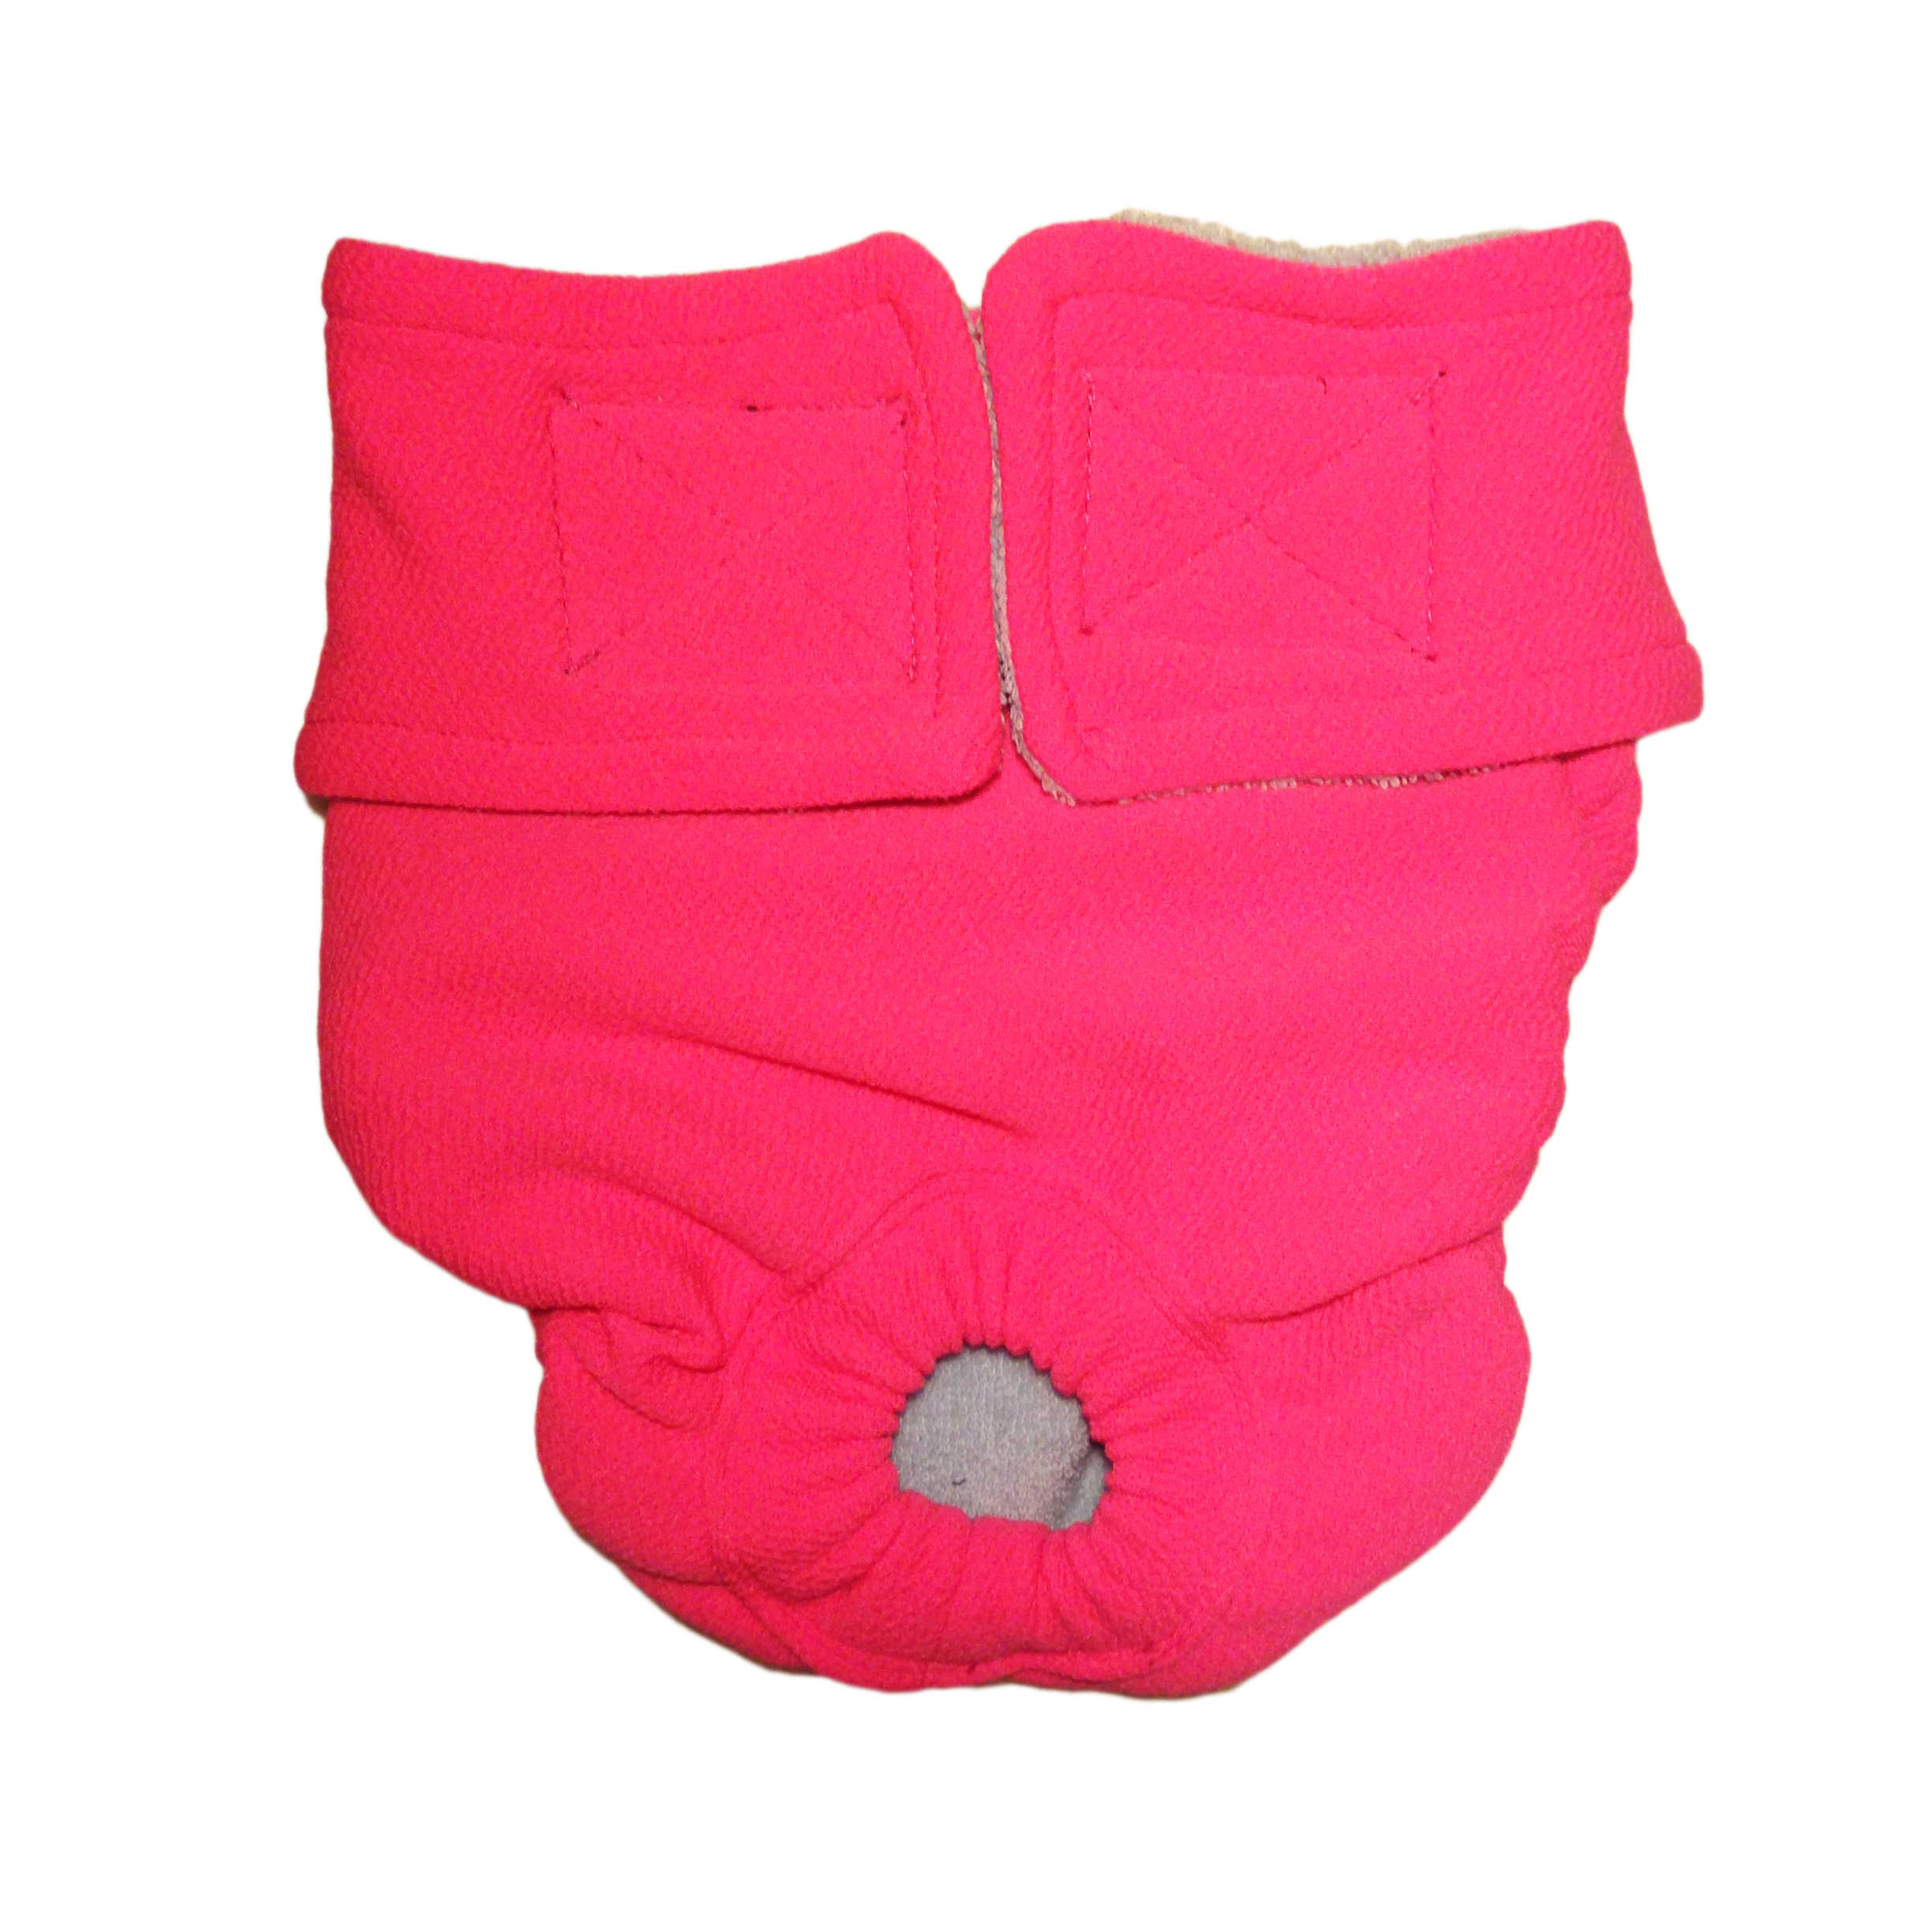 Barkertime Pink Washable Cat Diaper Made In Usa